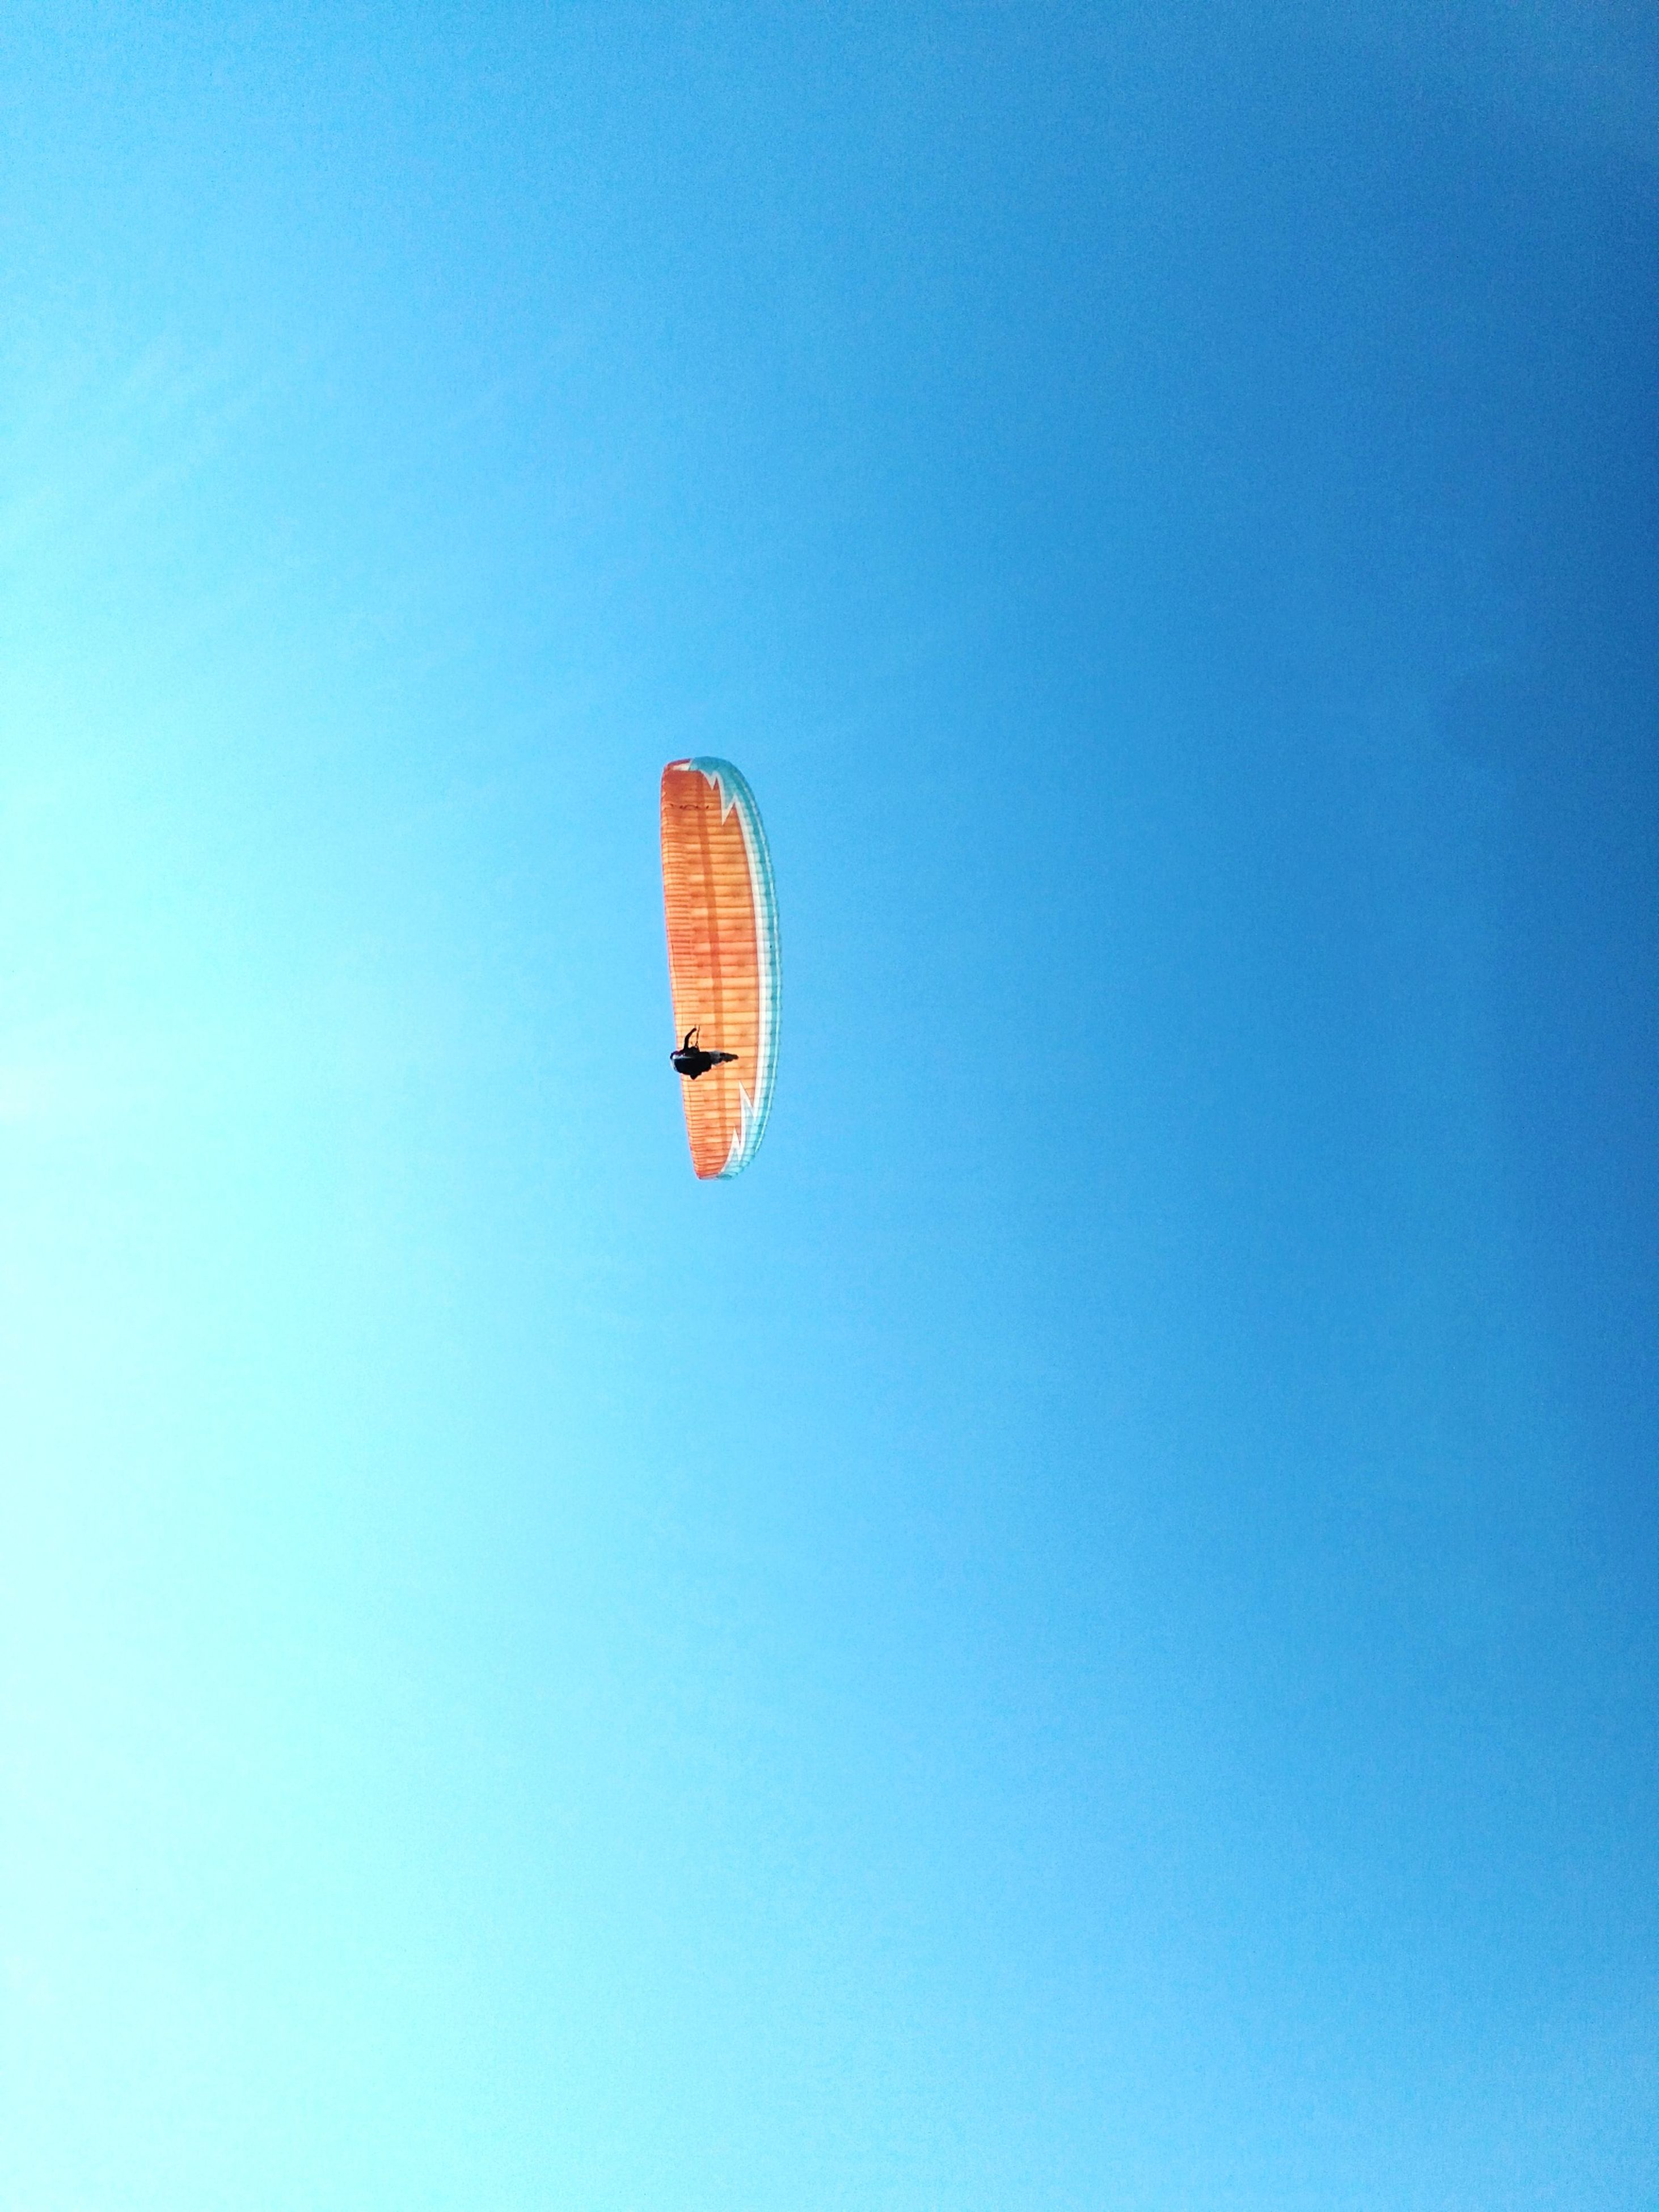 adventure, parachute, extreme sports, low angle view, mid-air, blue, sport, flying, leisure activity, clear sky, paragliding, outdoors, day, nature, real people, one person, sky, people